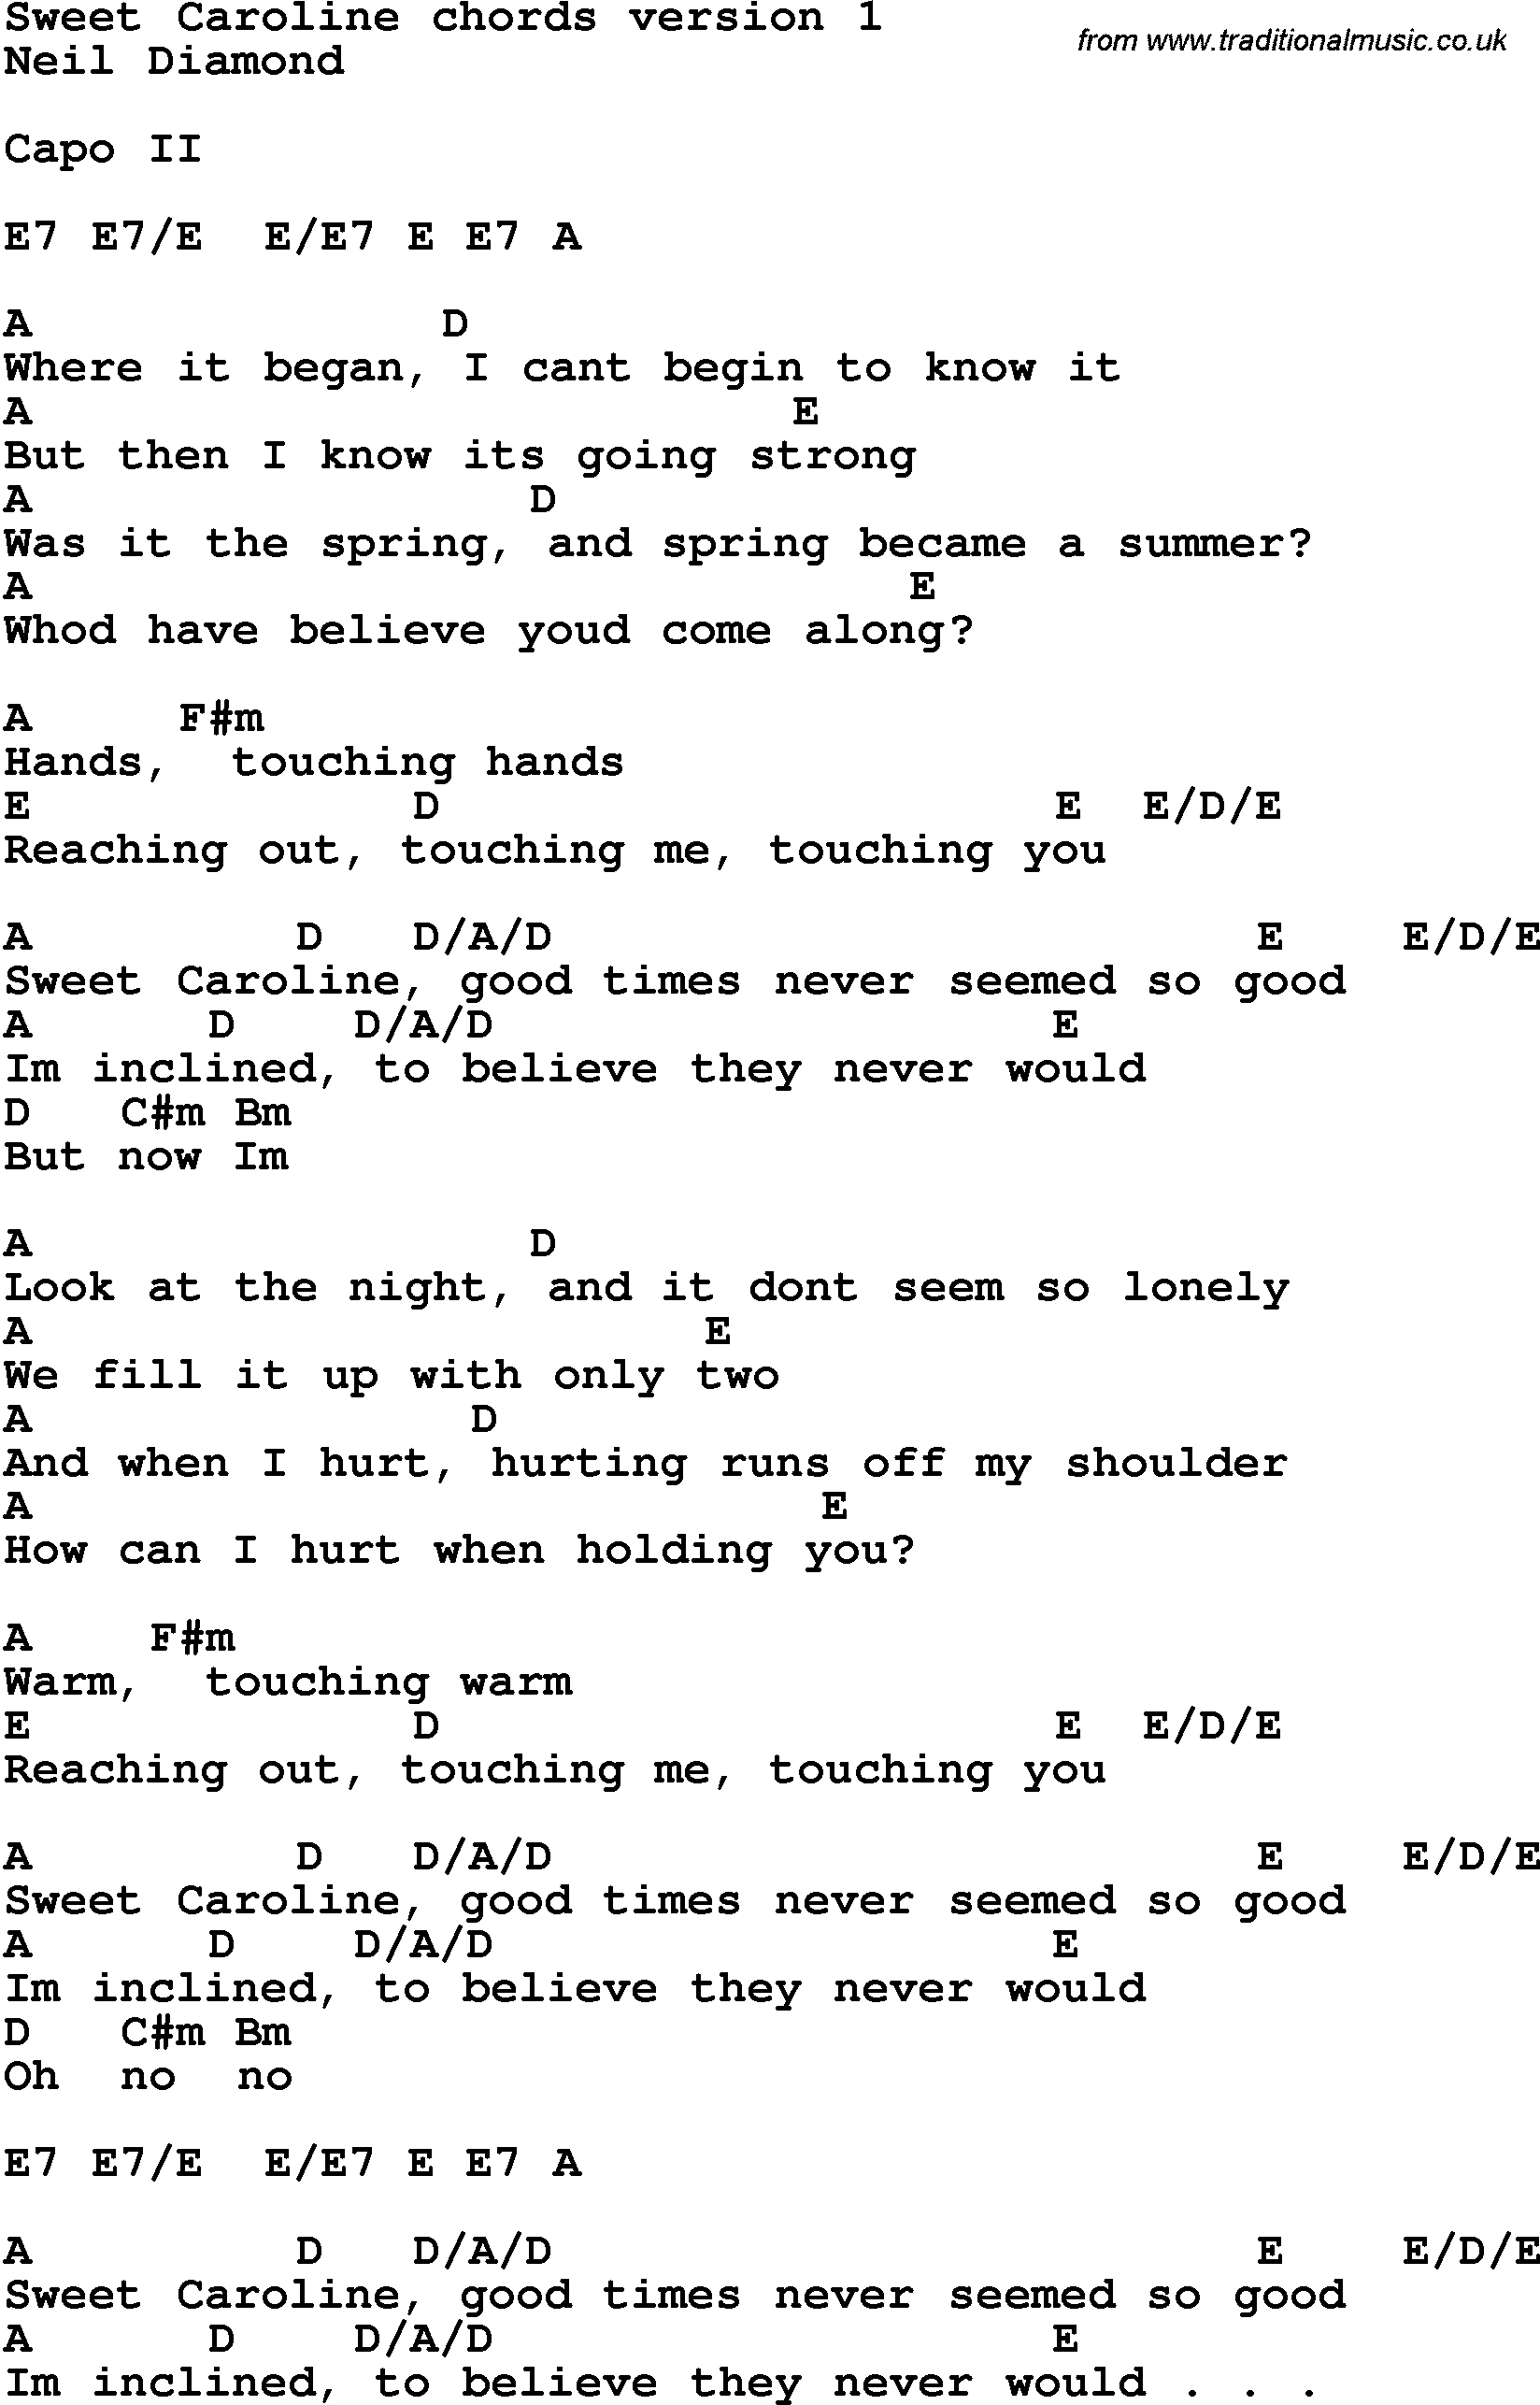 Song Lyrics With Guitar Chords For Sweet Caroline - Free Printable Song Lyrics With Guitar Chords